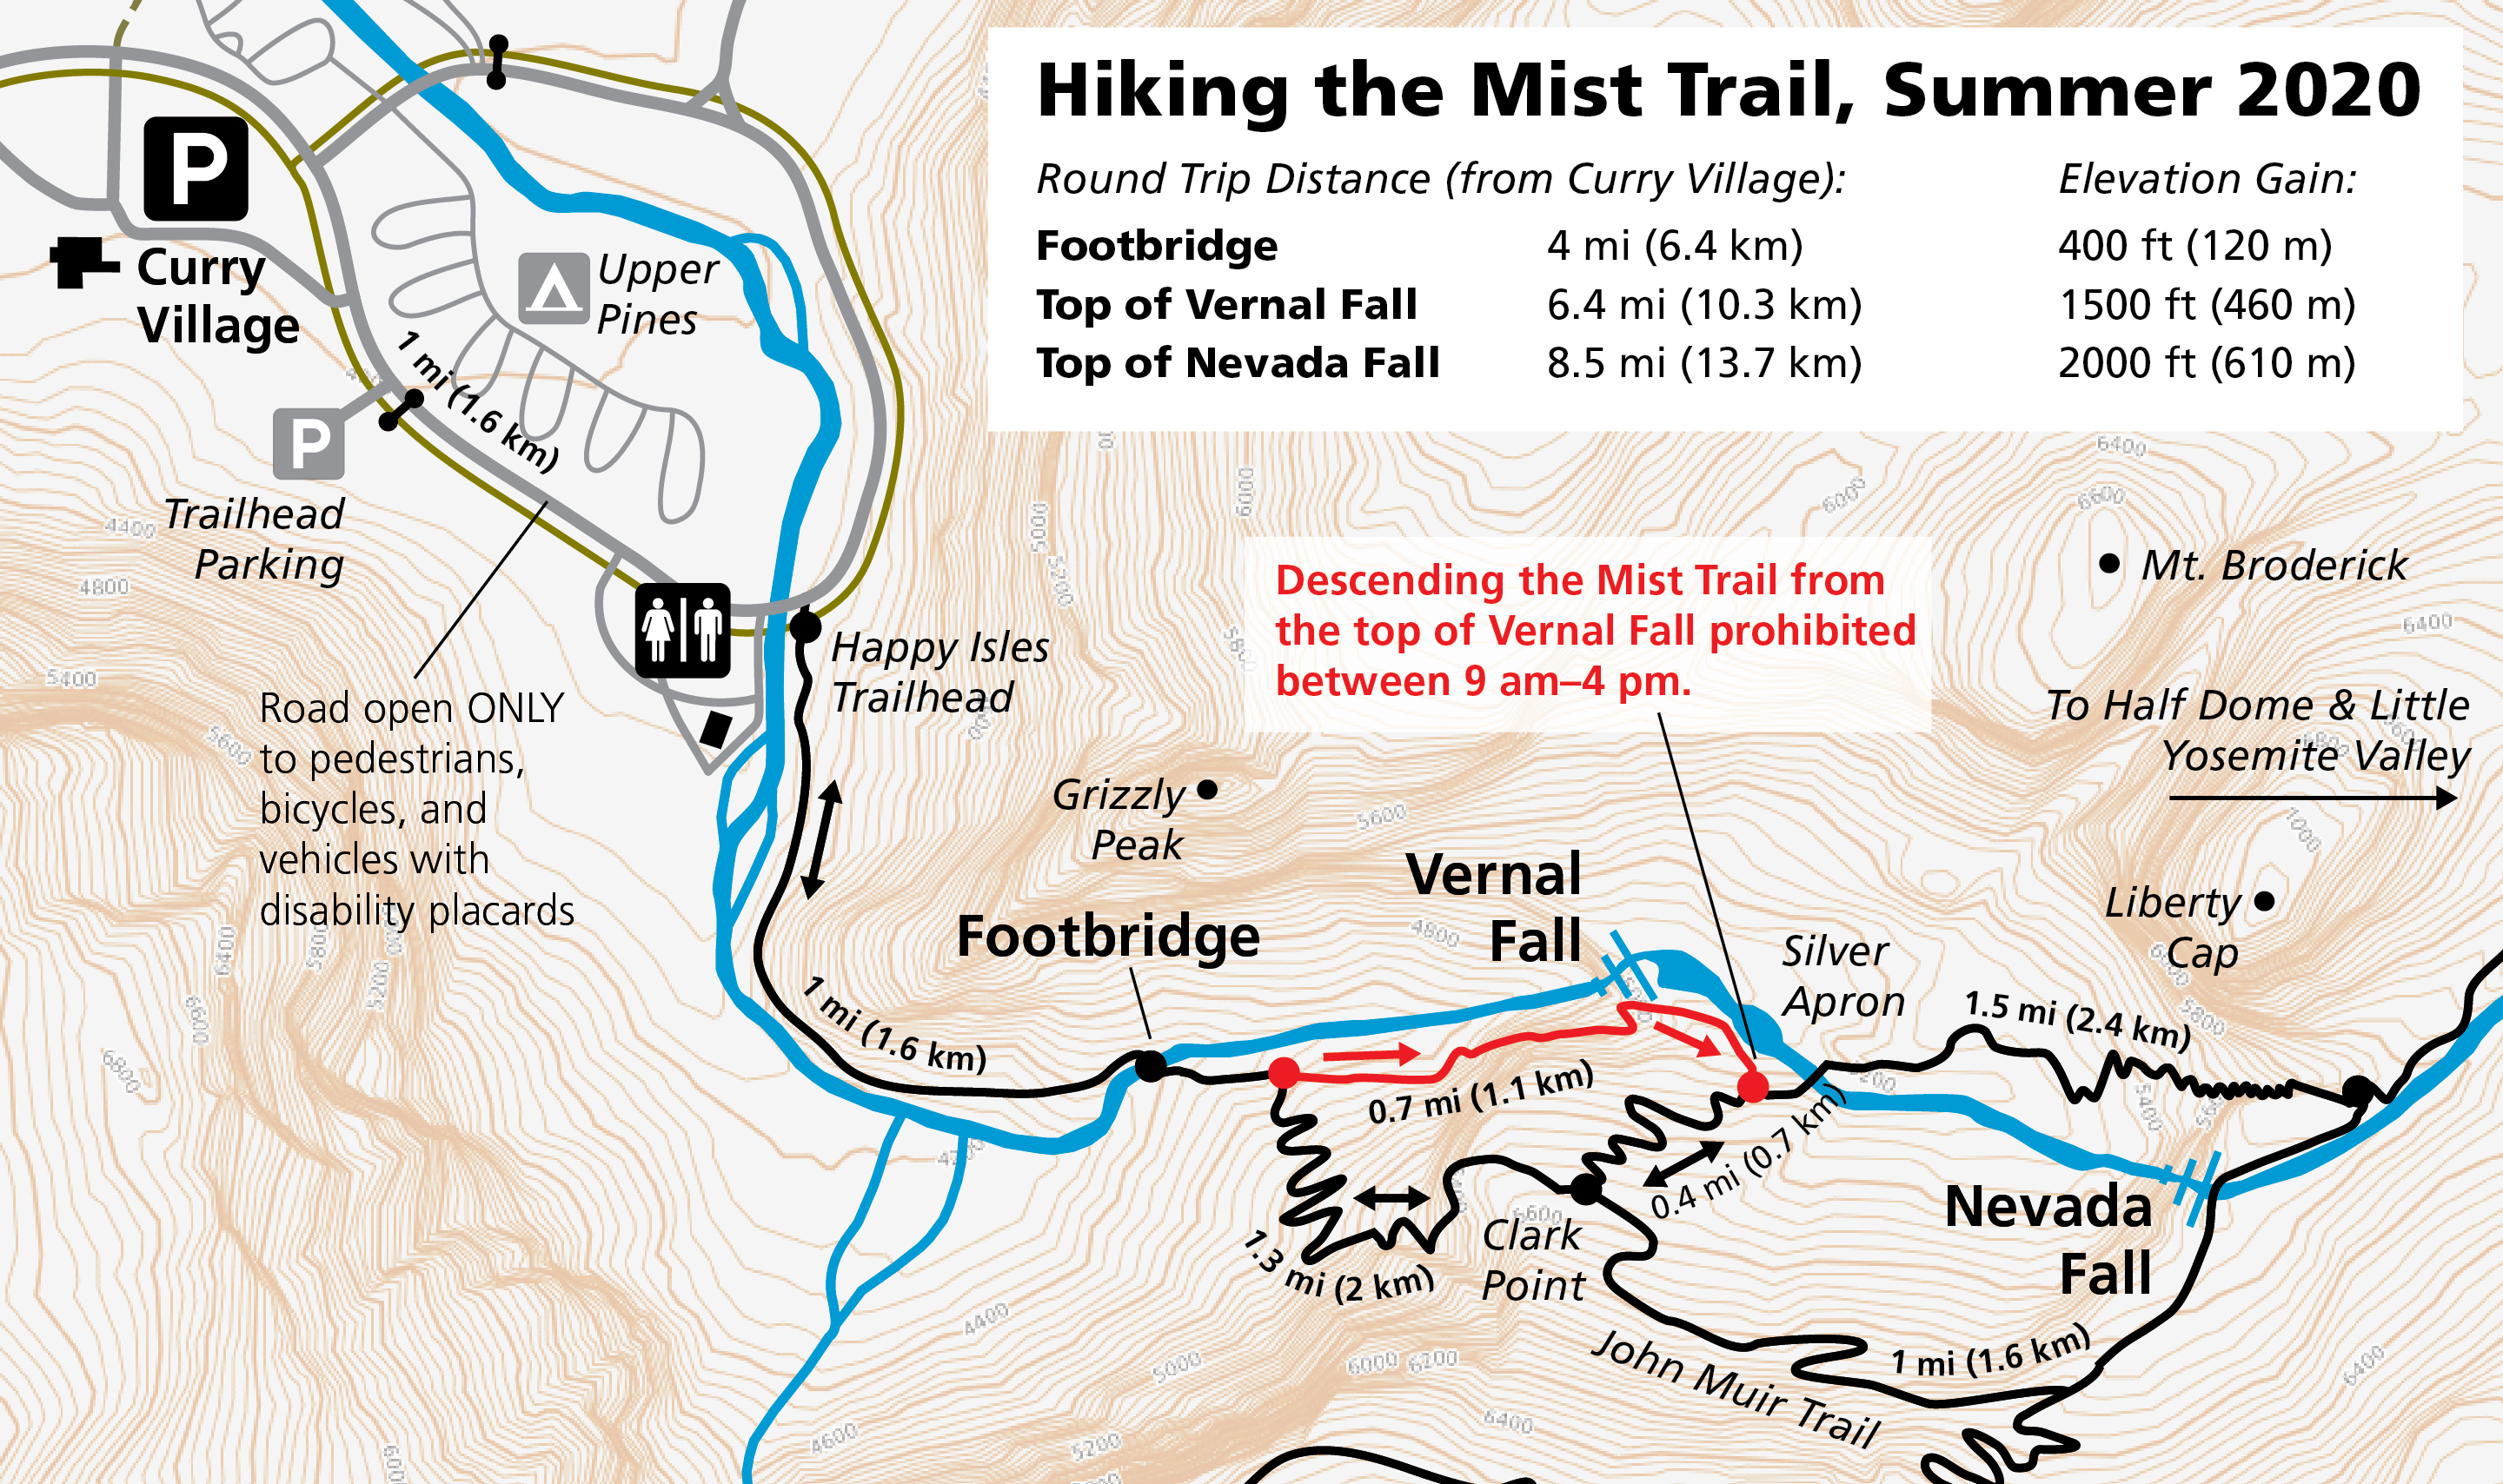 Map shows one-way closure of mist trail between JMT junction and top of Vernal Fall.